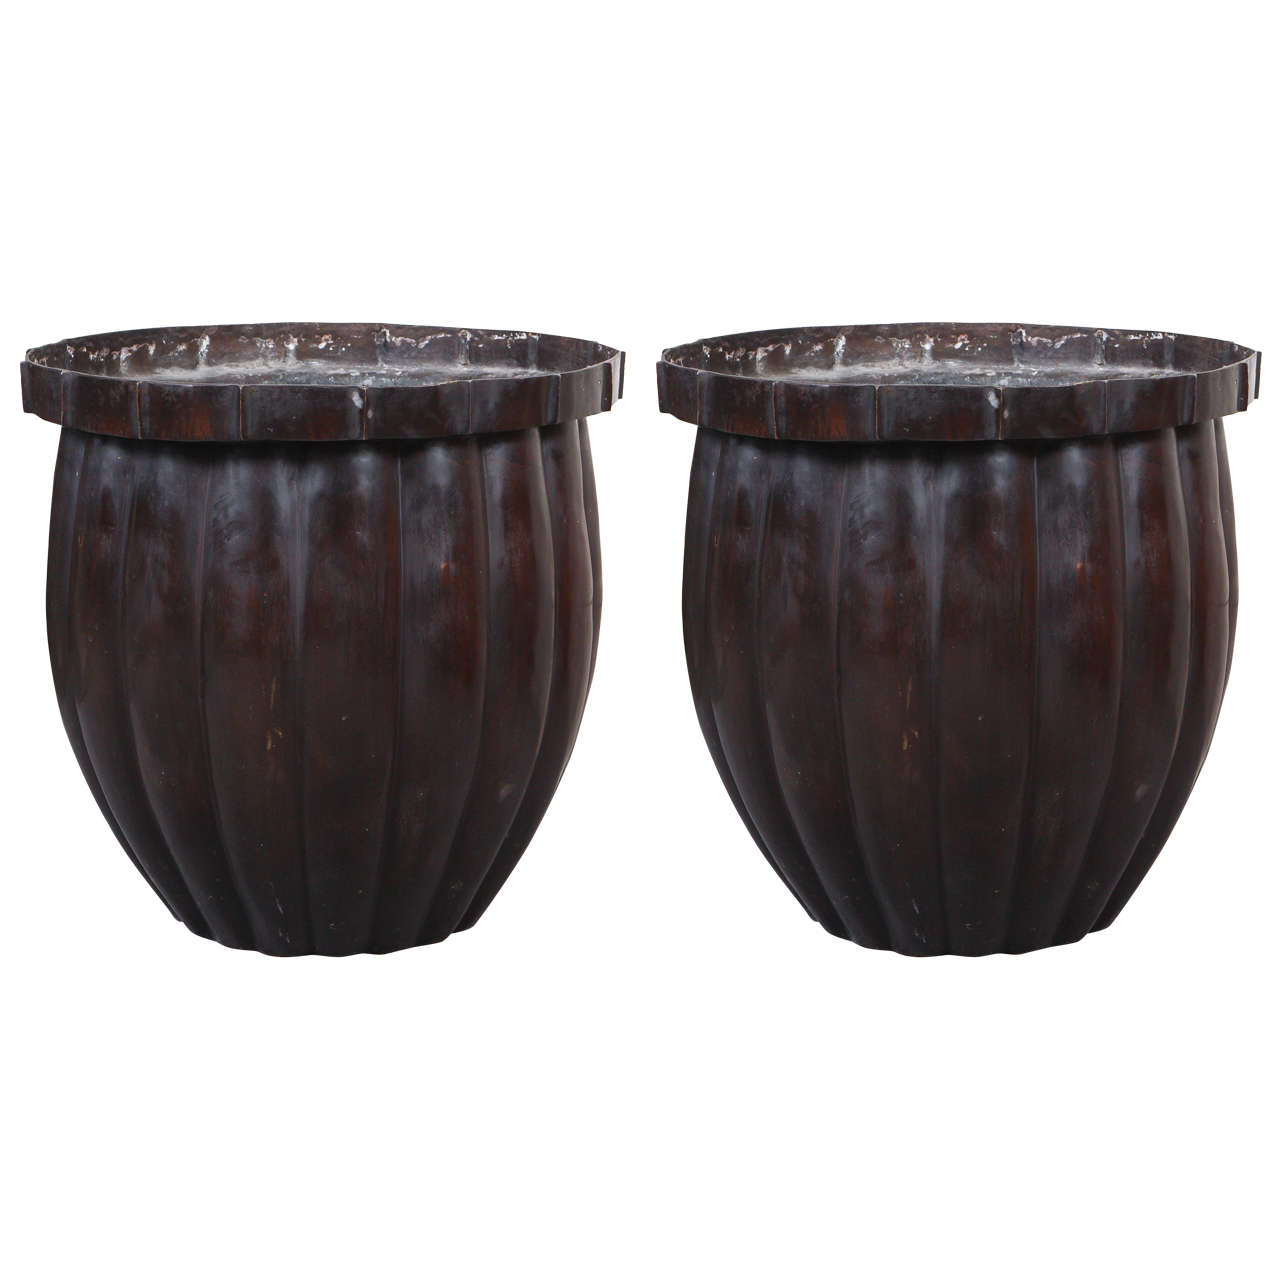 large colorful planters large urn planter pot black. Black Bedroom Furniture Sets. Home Design Ideas